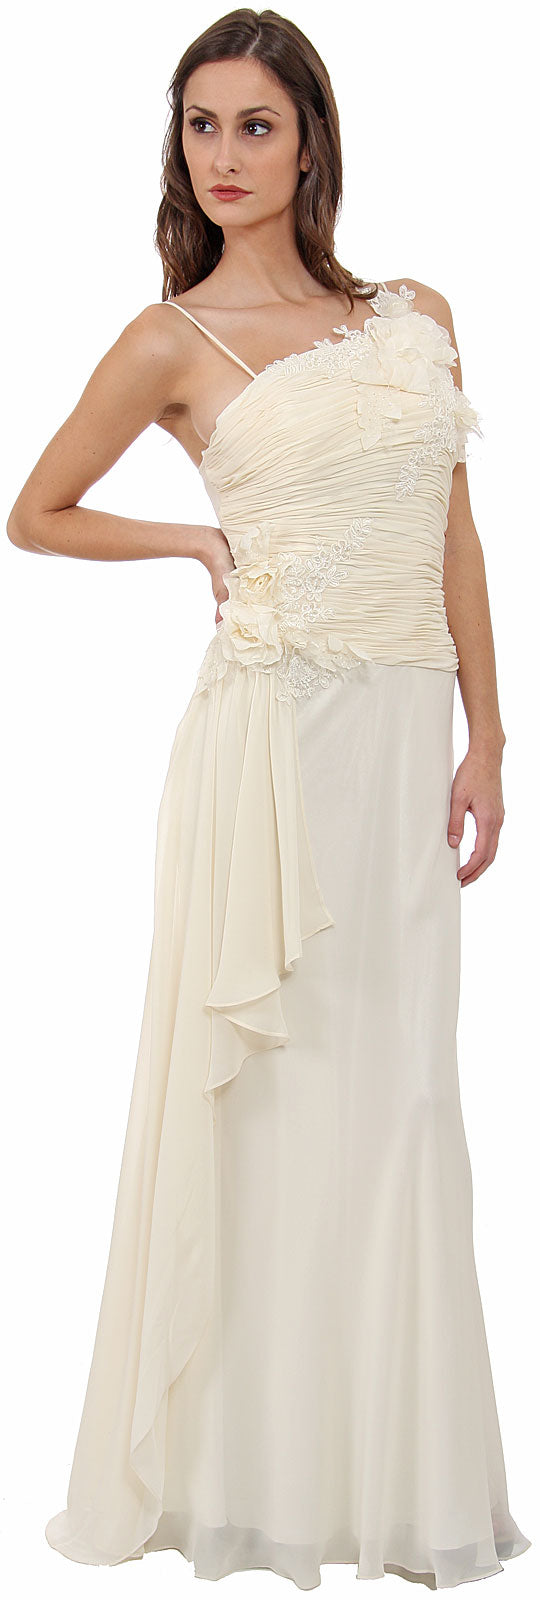 Main image of Asymmetric Top Floral And Sheered Wedding Dress